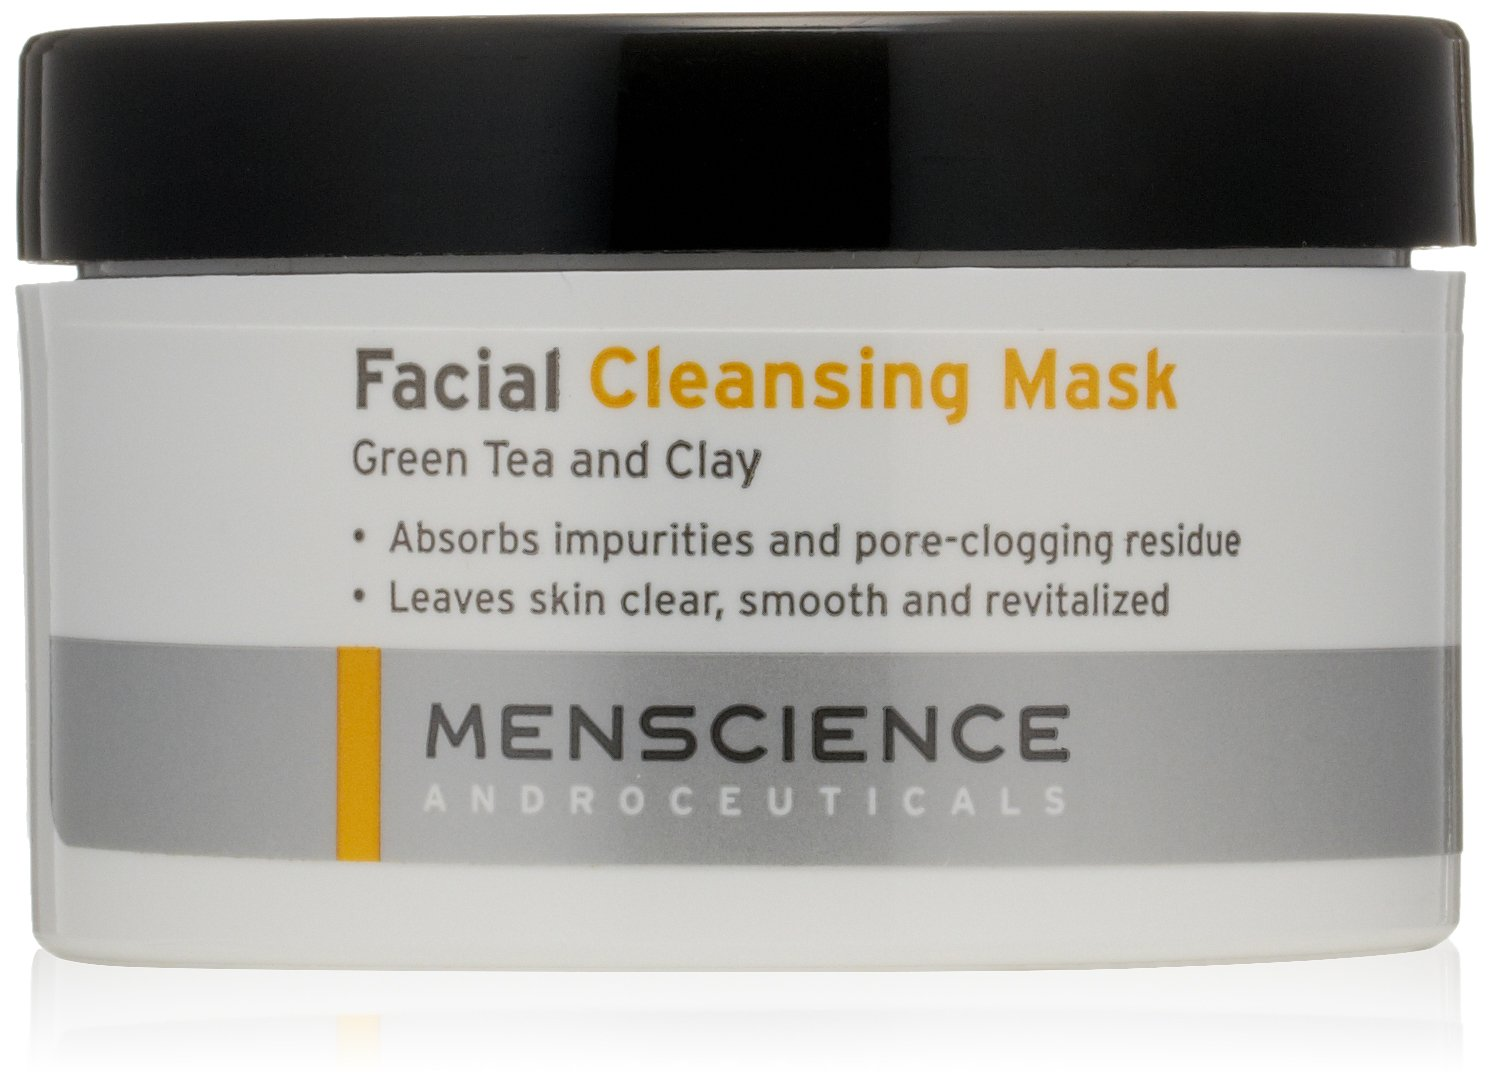 MenScience Androceuticals Facial Cleansing Mask, 3 oz.